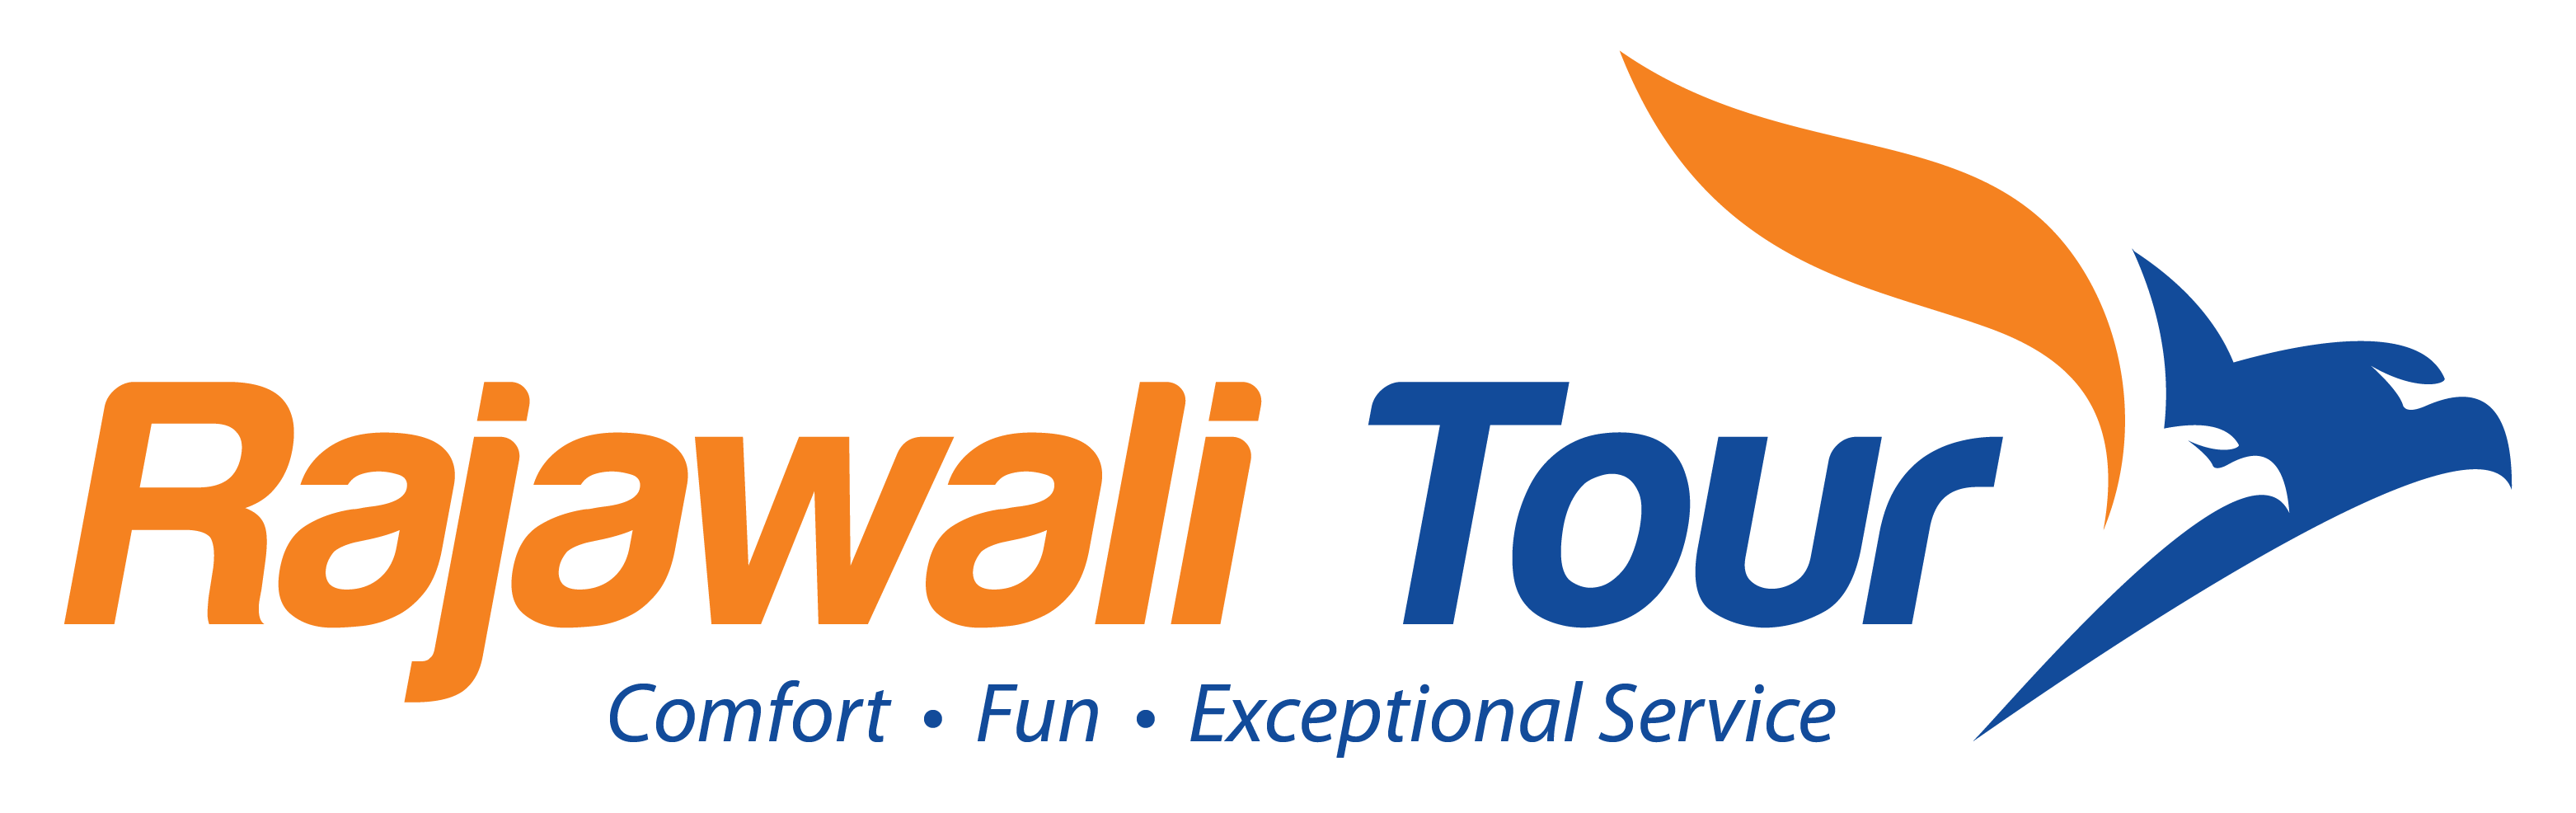 logo_rajawali tour office-01